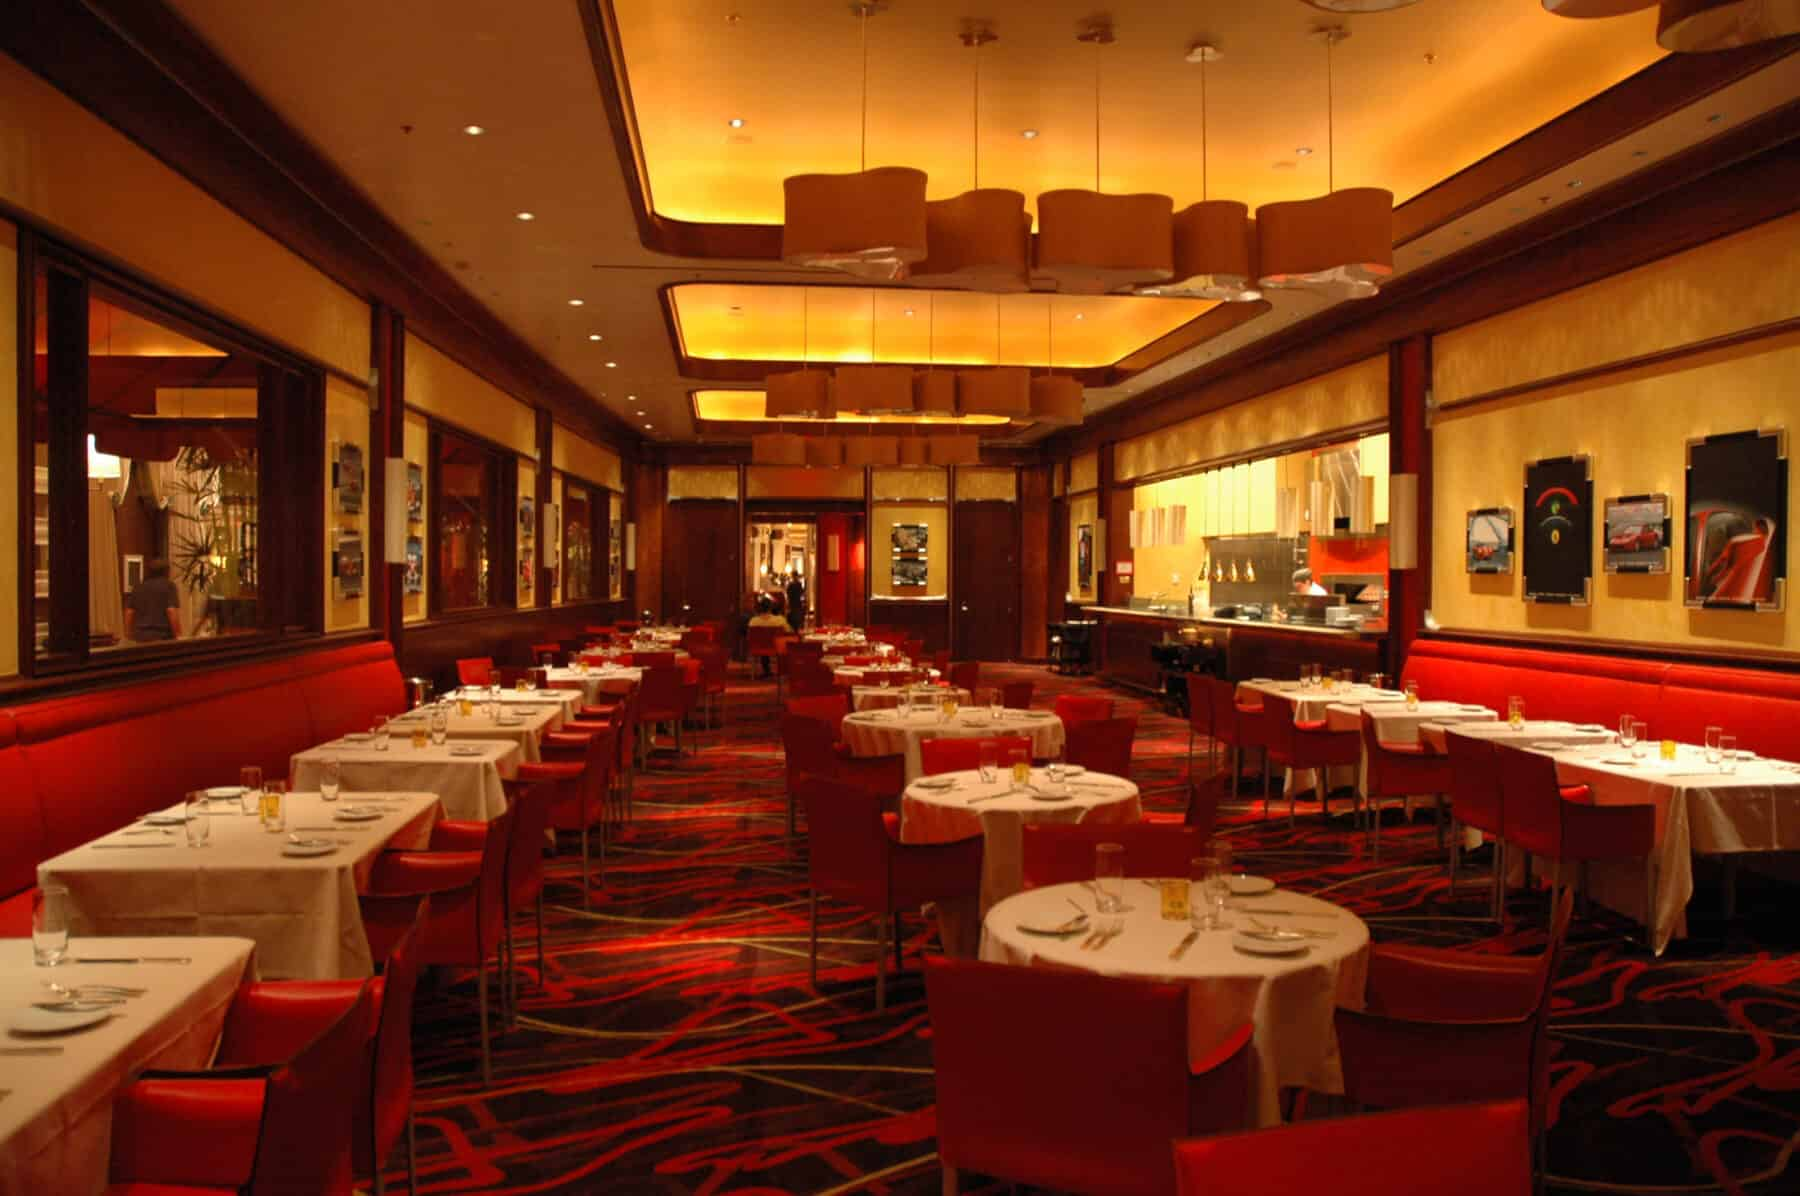 Custom Interior Finishes and Lighting for Restaurant at Wynn Hotel Remodel by Commercial Builder & General Contractor Structural Enterprises